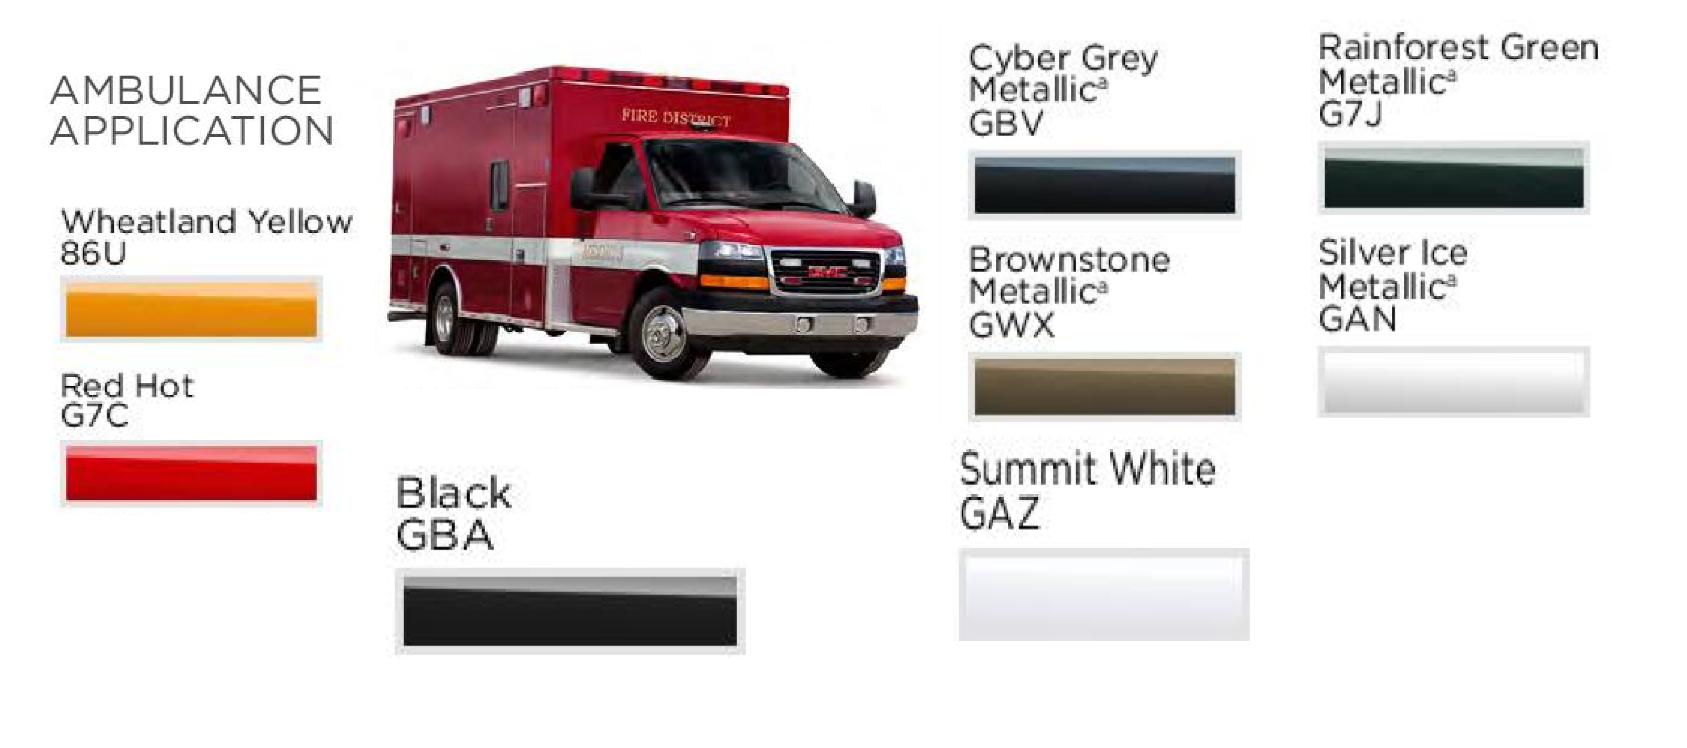 Paint Colors used on Gm Ambulances in 2017